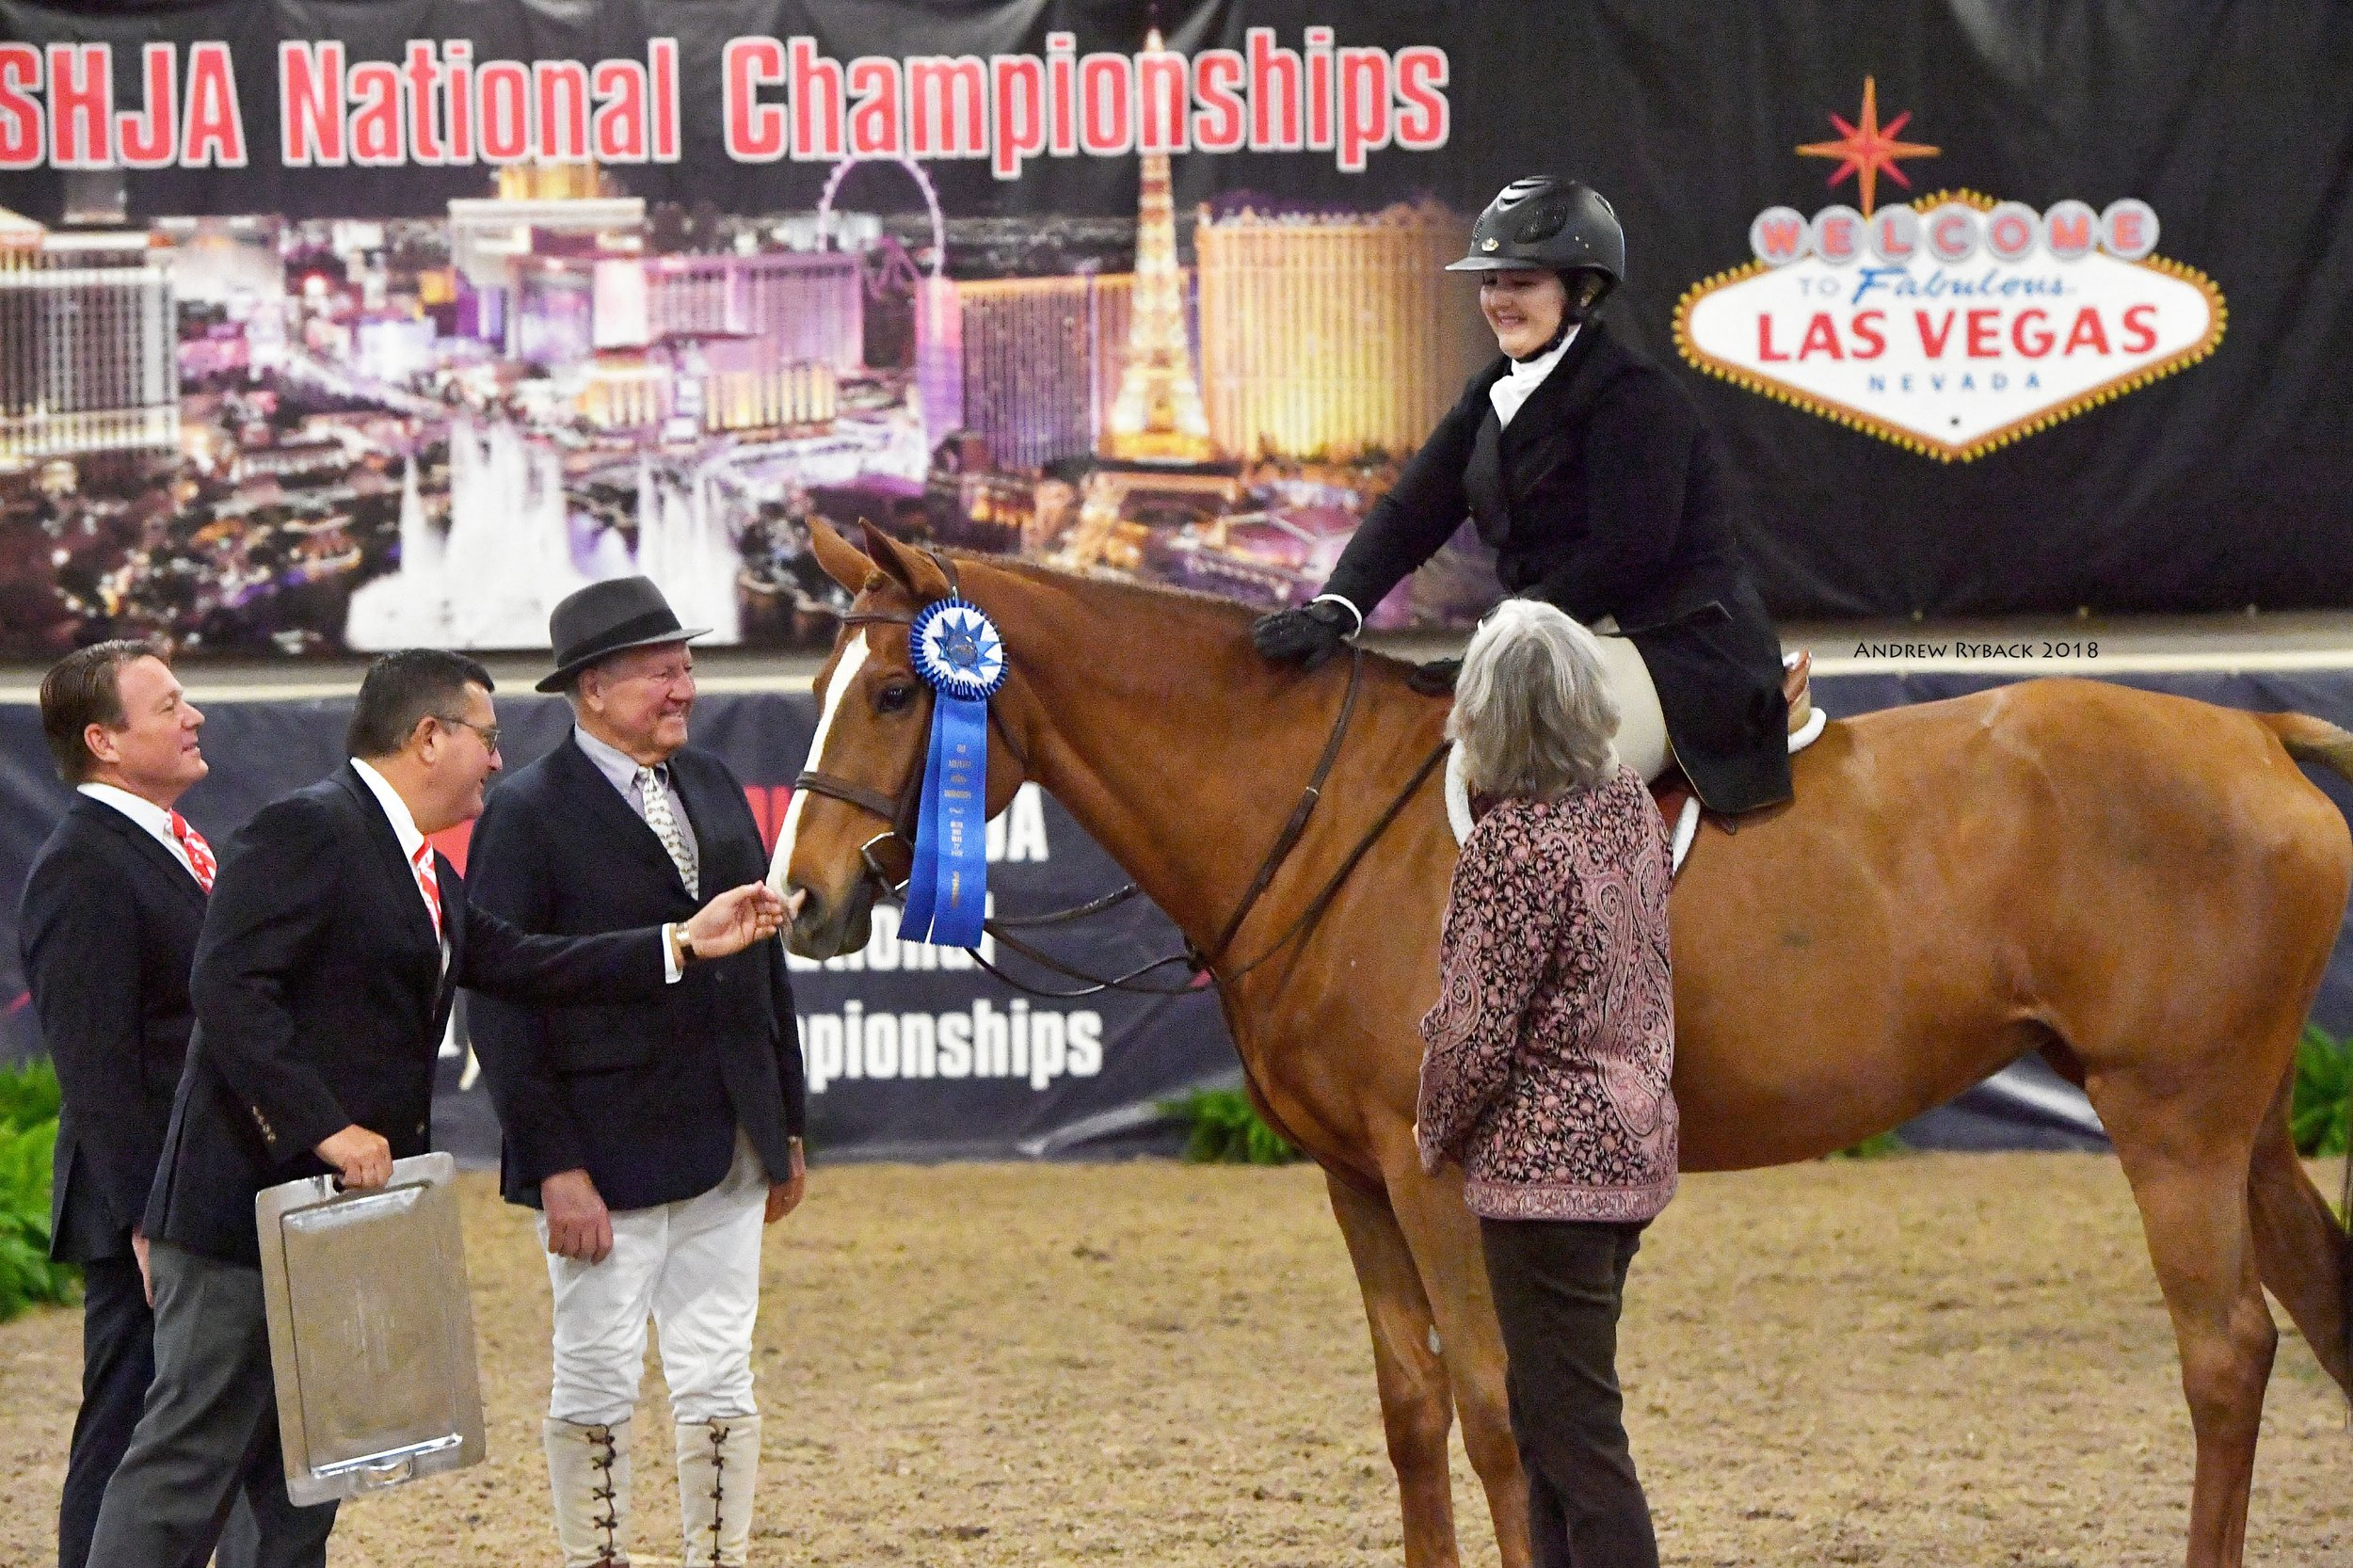 Joe Norick (second from left), Director at Aon Private Risk Management, congratulates winners at the 2018 Aon/USHJA National Championships. Photo © Andrew Ryback Photography.